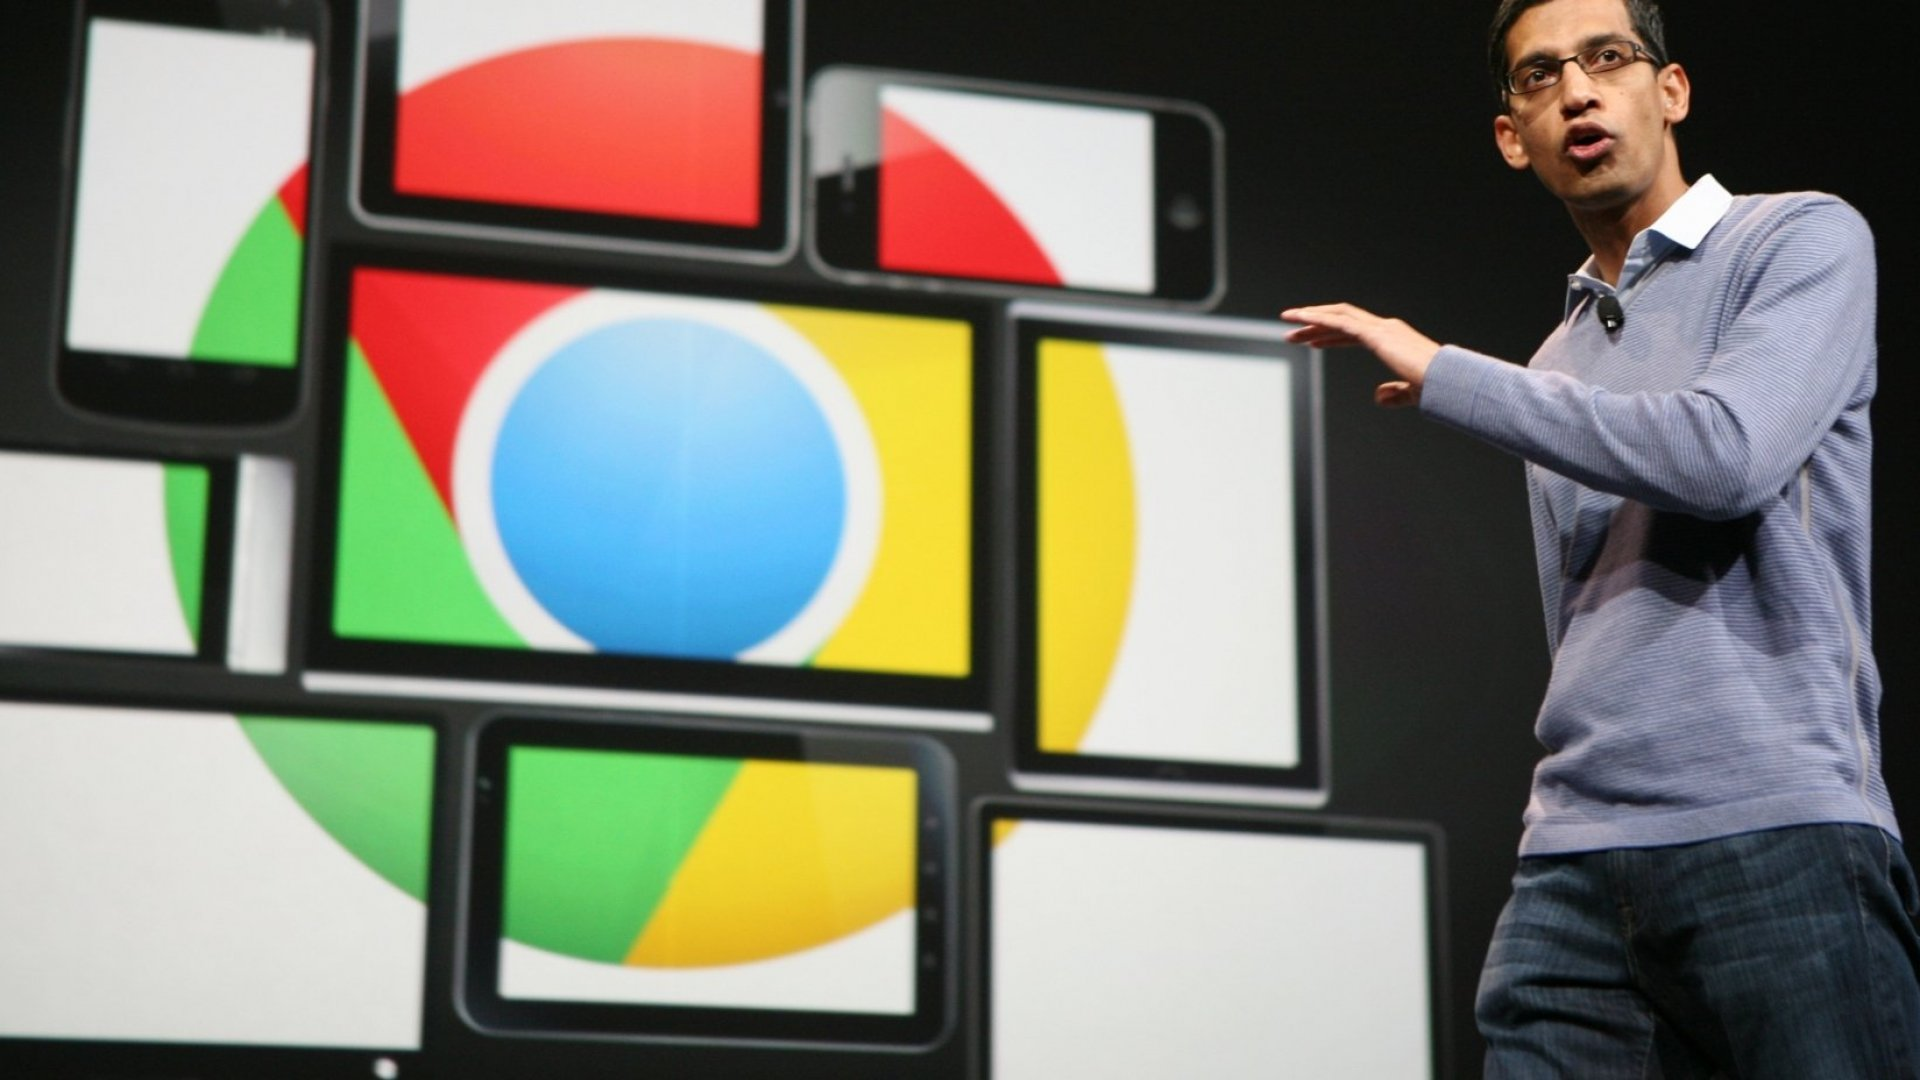 Google Is Putting an End to Ad-Blocking in Chrome: Here Are the 5 Best Browser Alternatives